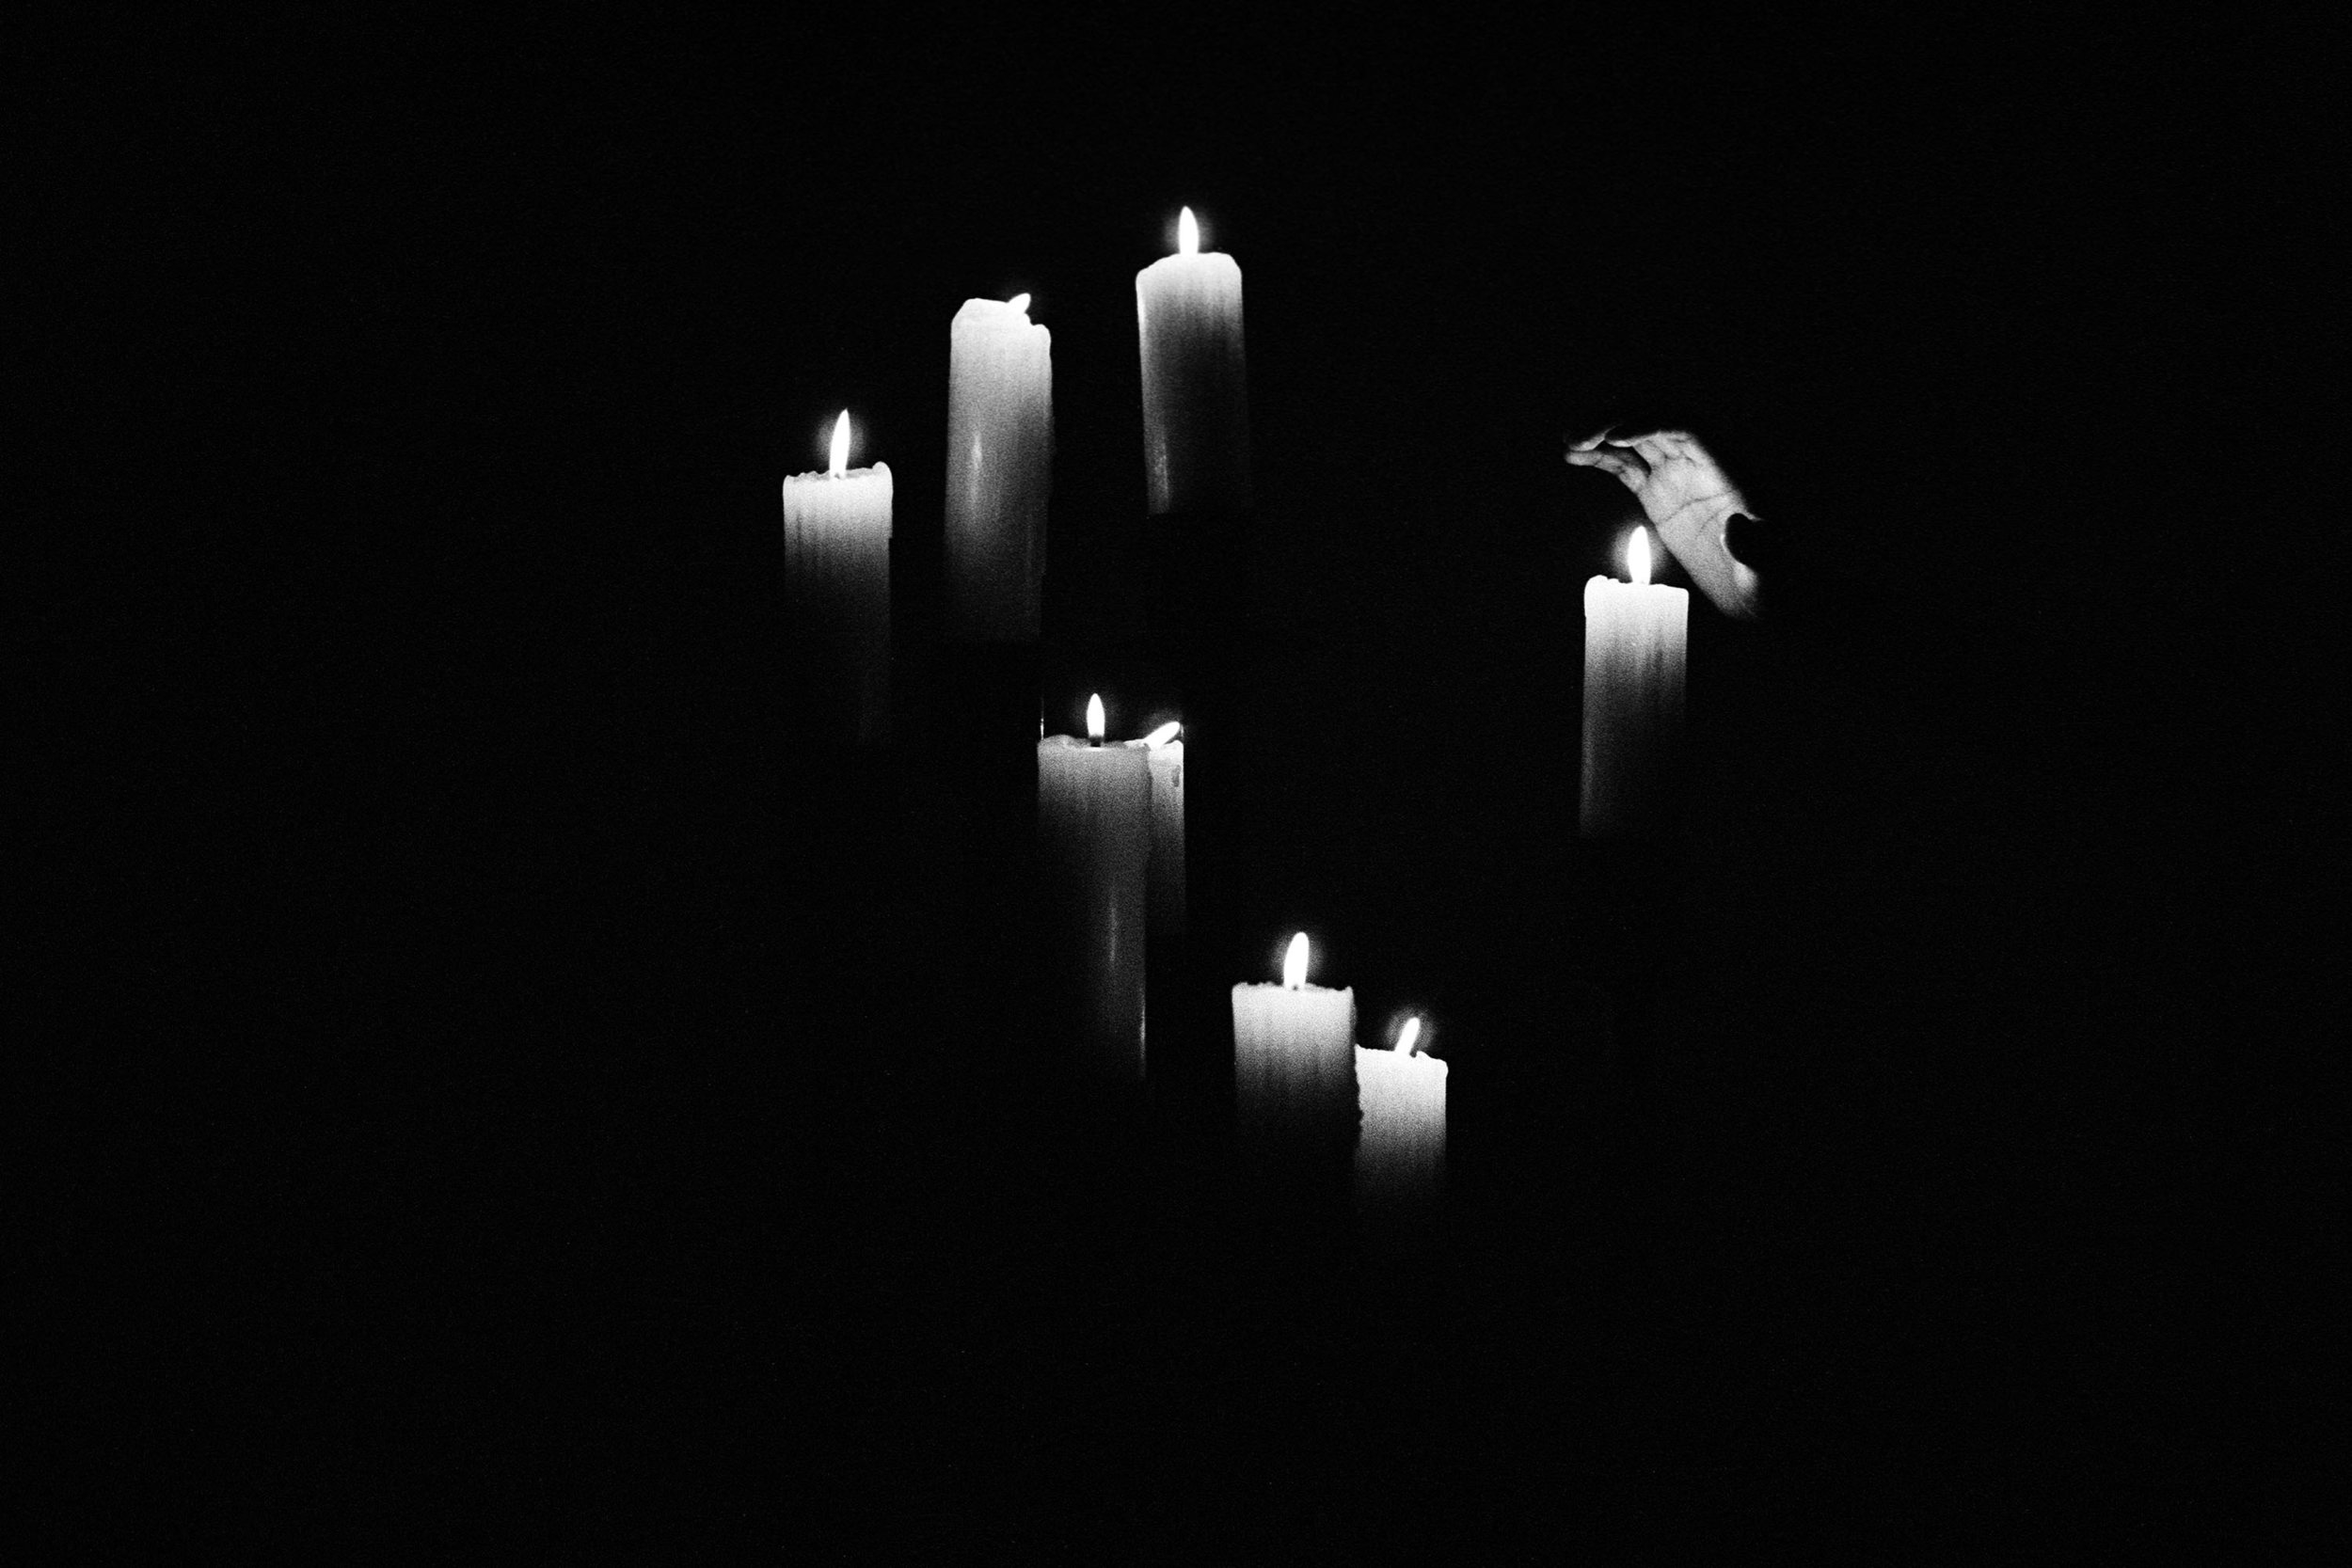 Candles, hand